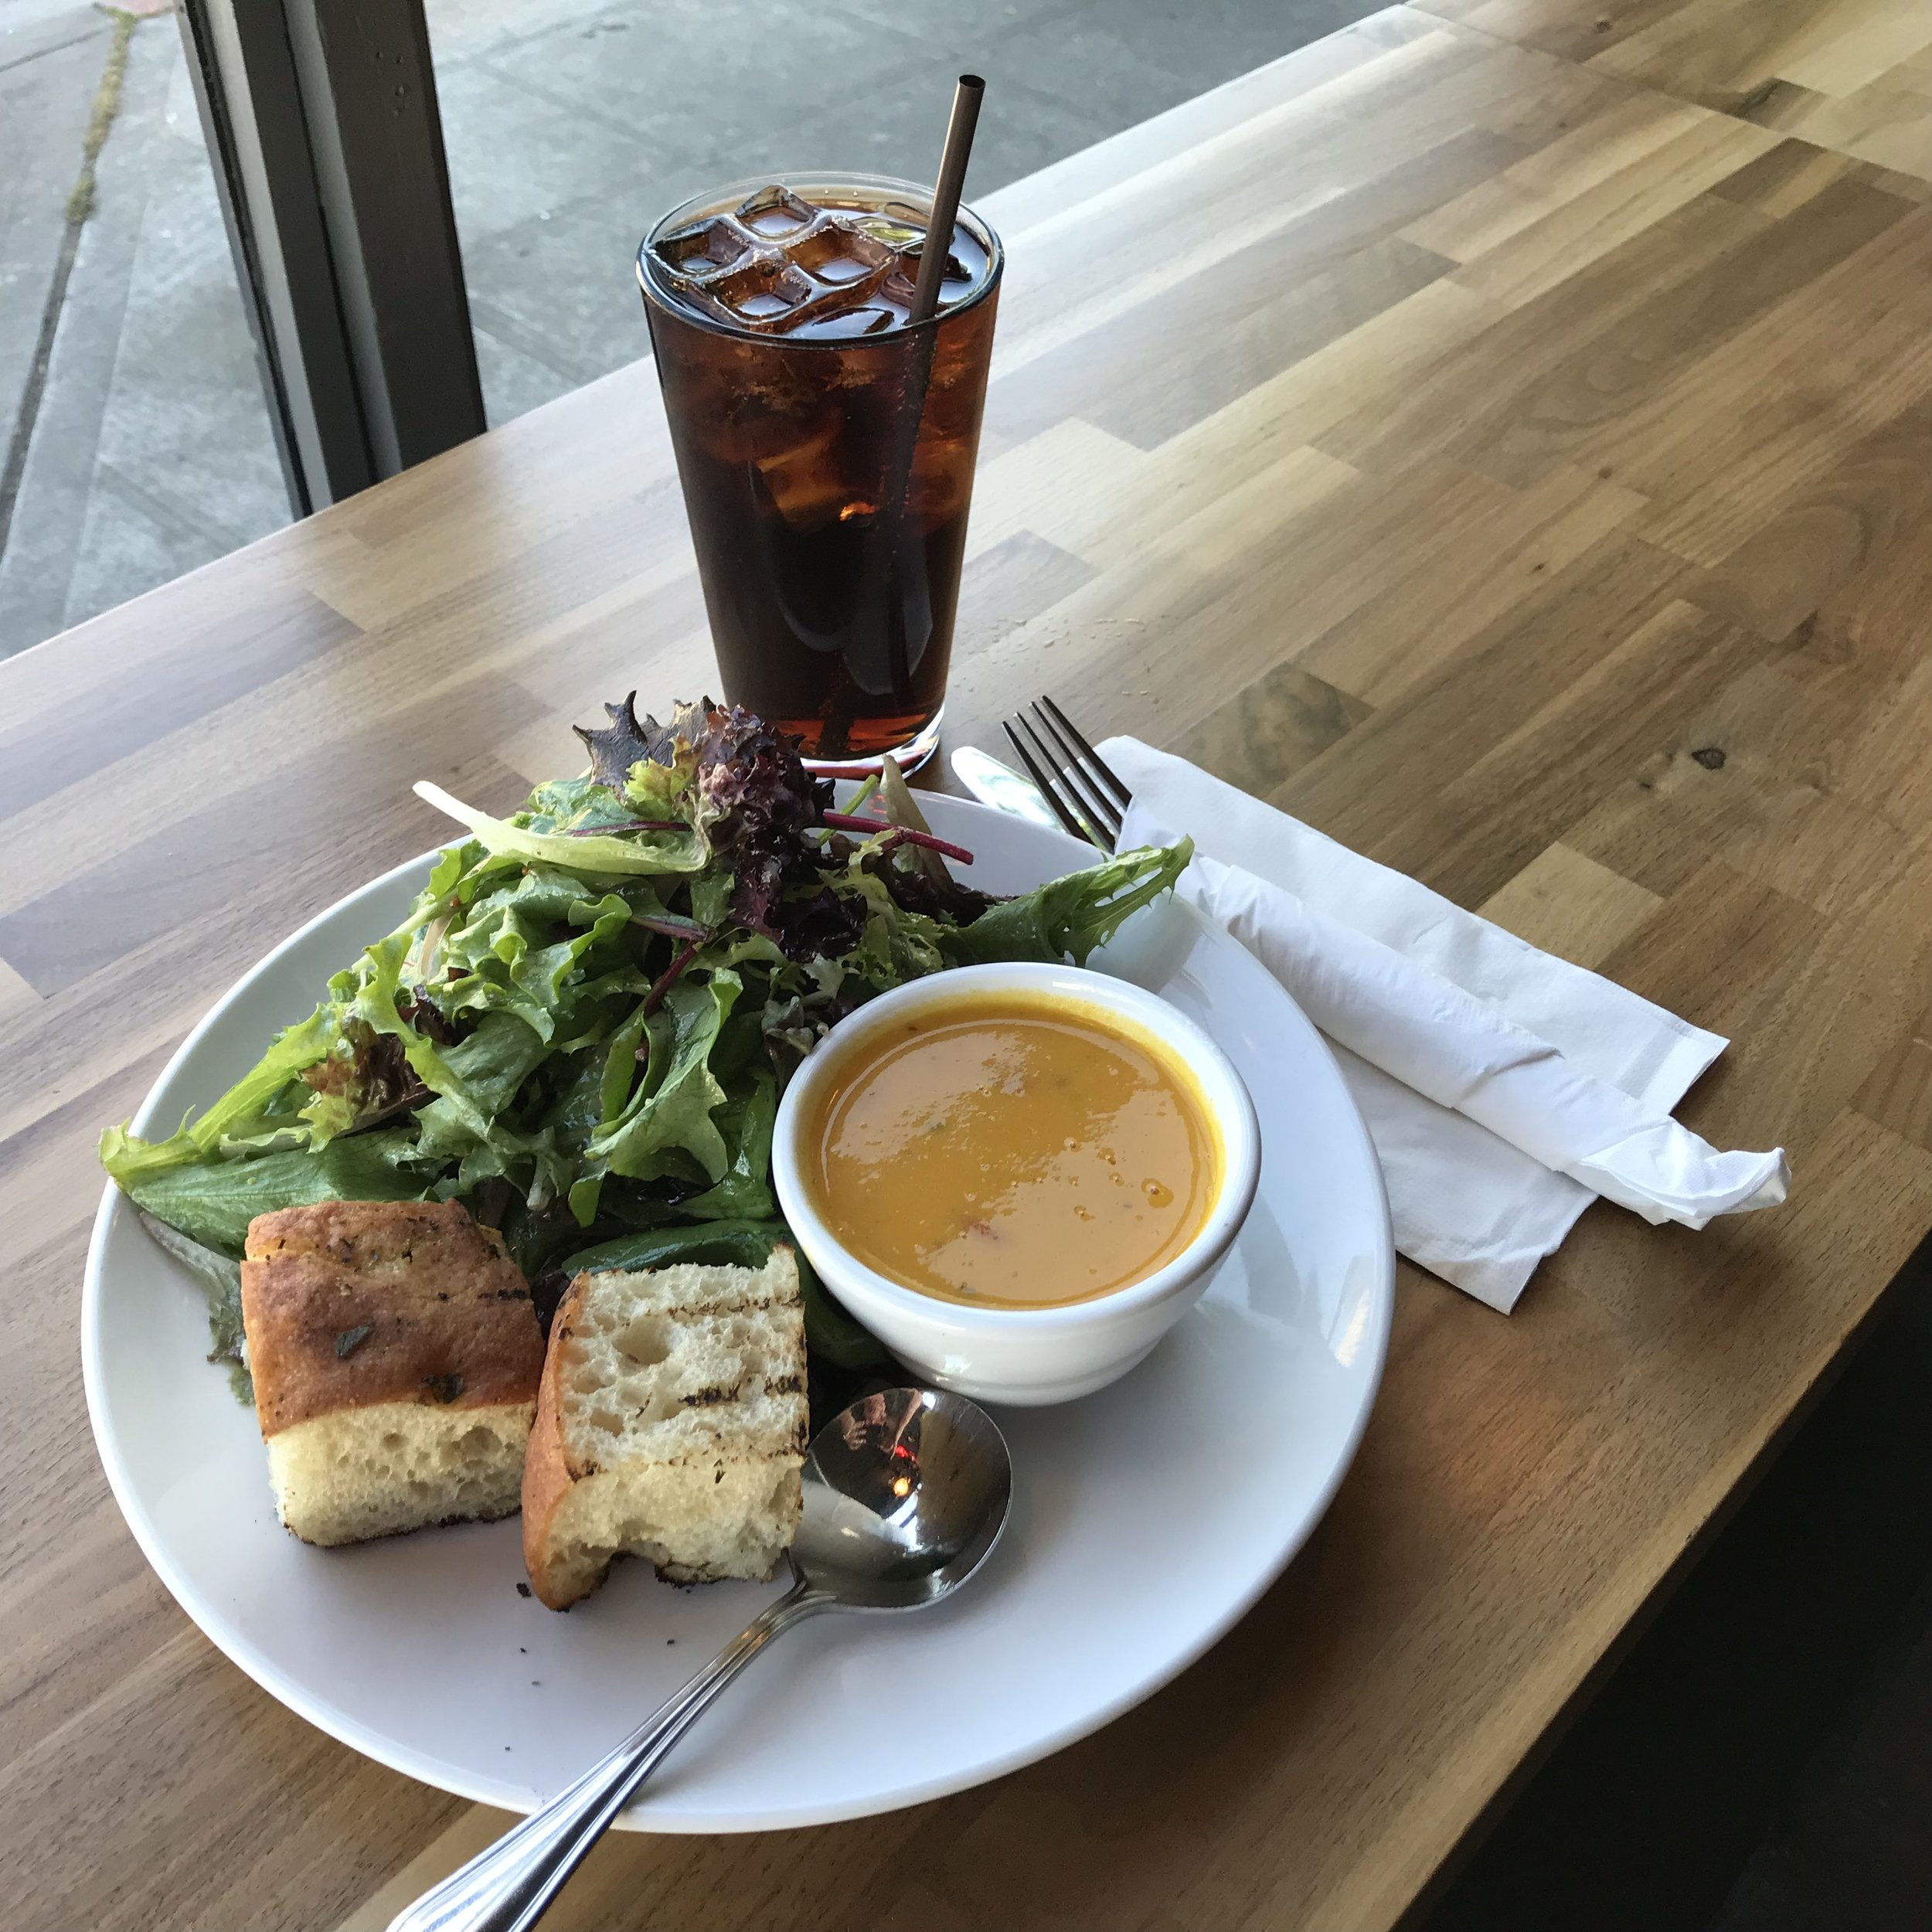 CUP OF SOUP & GREENS - We always have a veggie (or vegan) soup and a meat soup option. They're made in house and rotate throughout the week. Served with Grand Central Bakery bread.